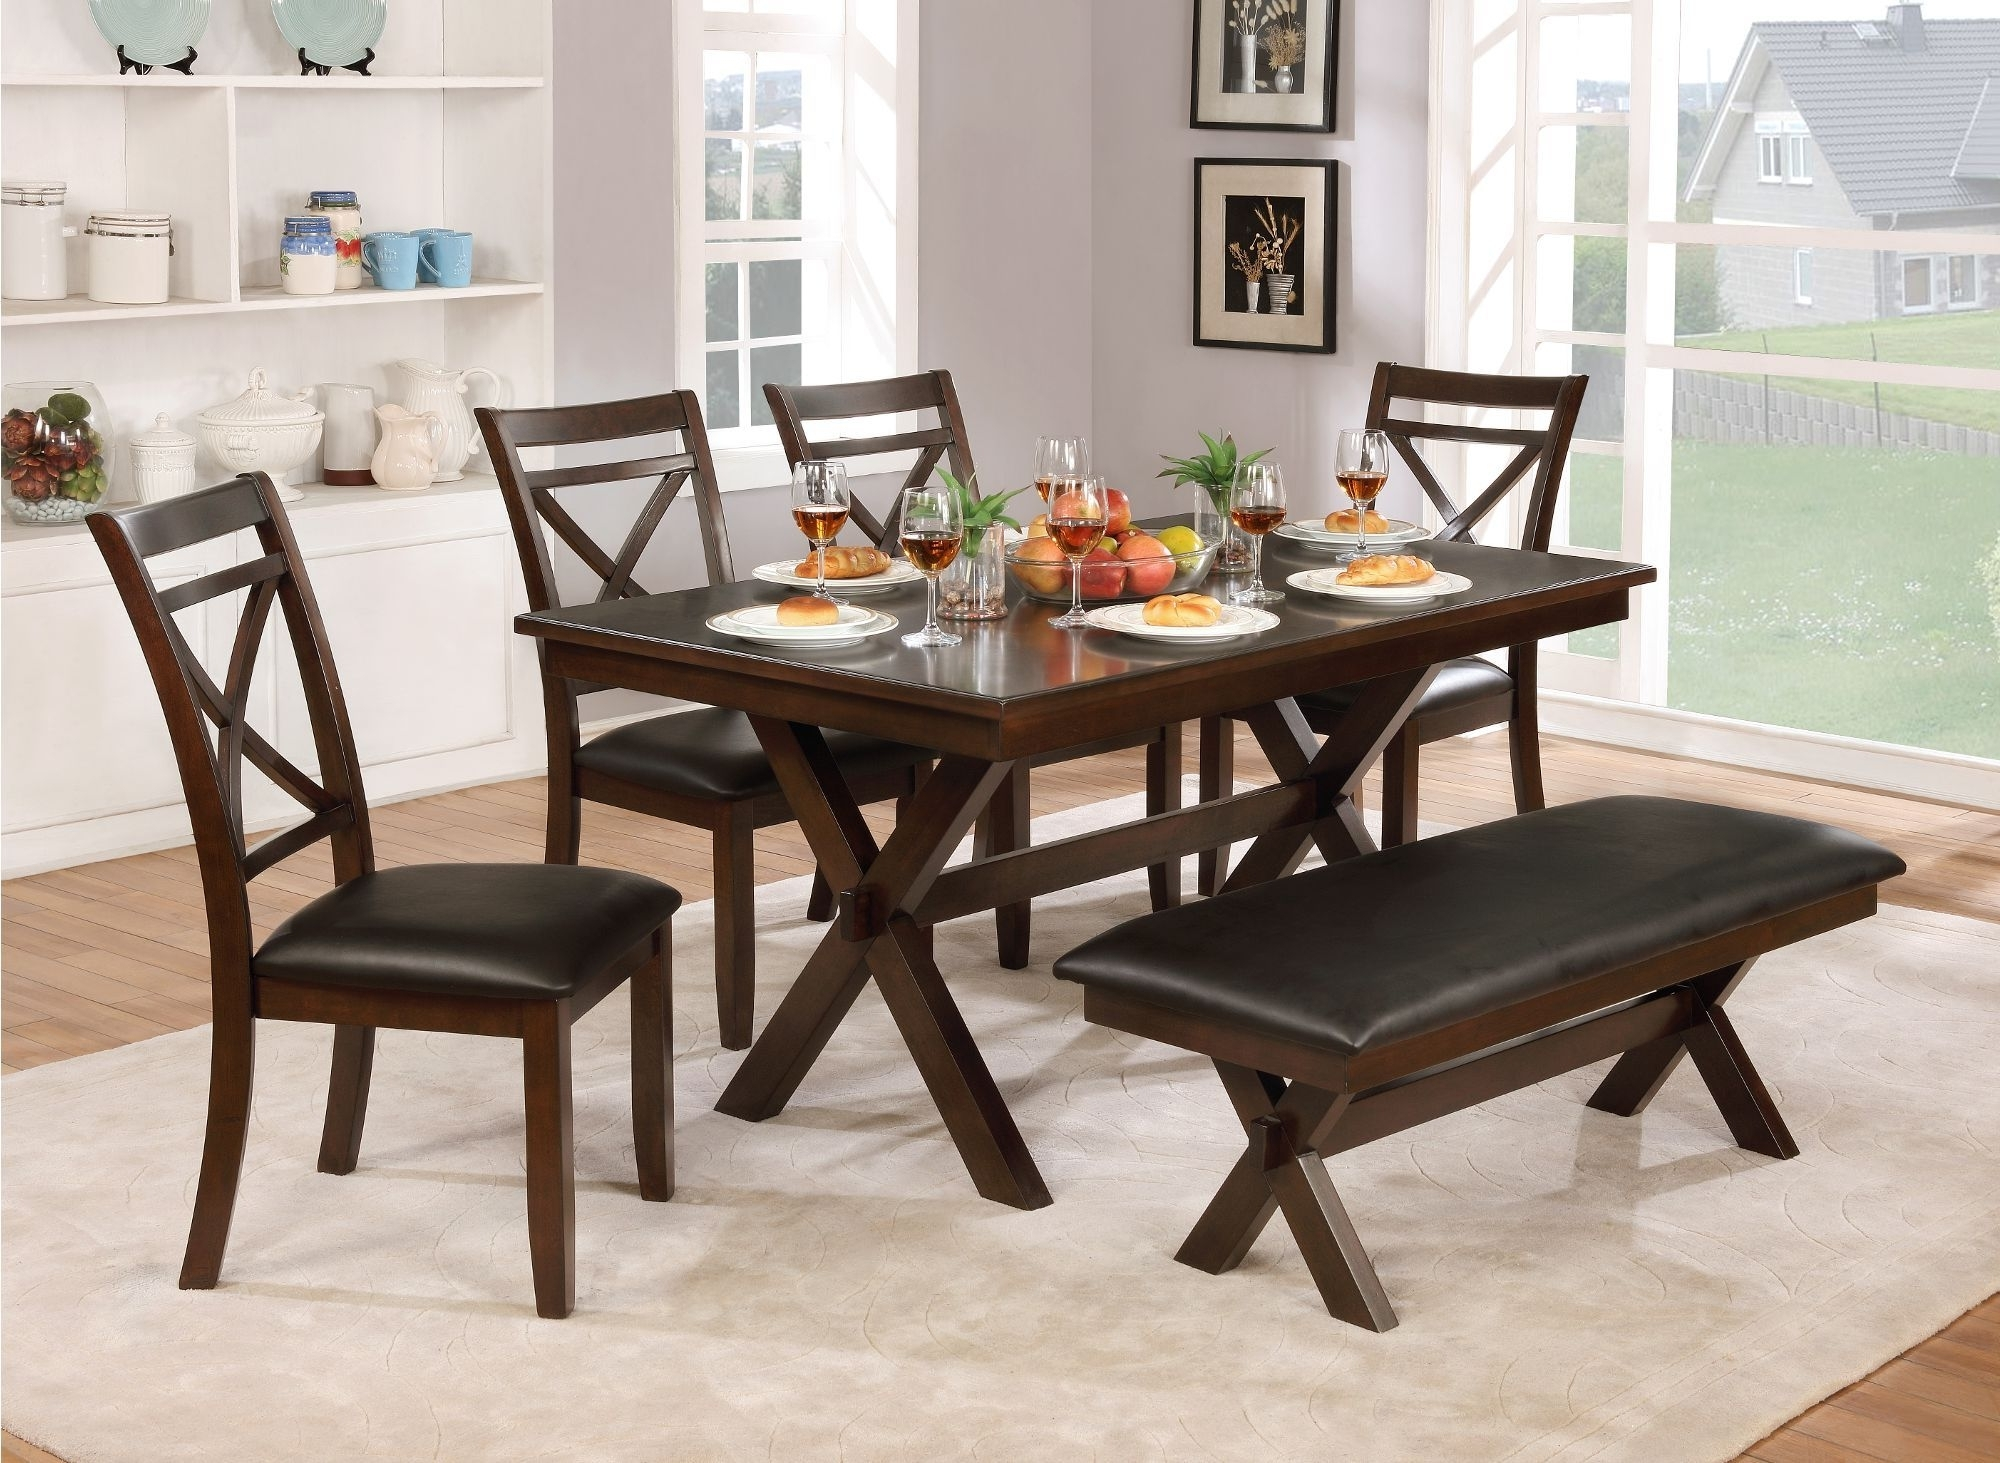 Fashionable Clearance Dark Cherry Transitional 6 Piece Dining Set With Bench Pertaining To Caden 6 Piece Rectangle Dining Sets (View 9 of 25)